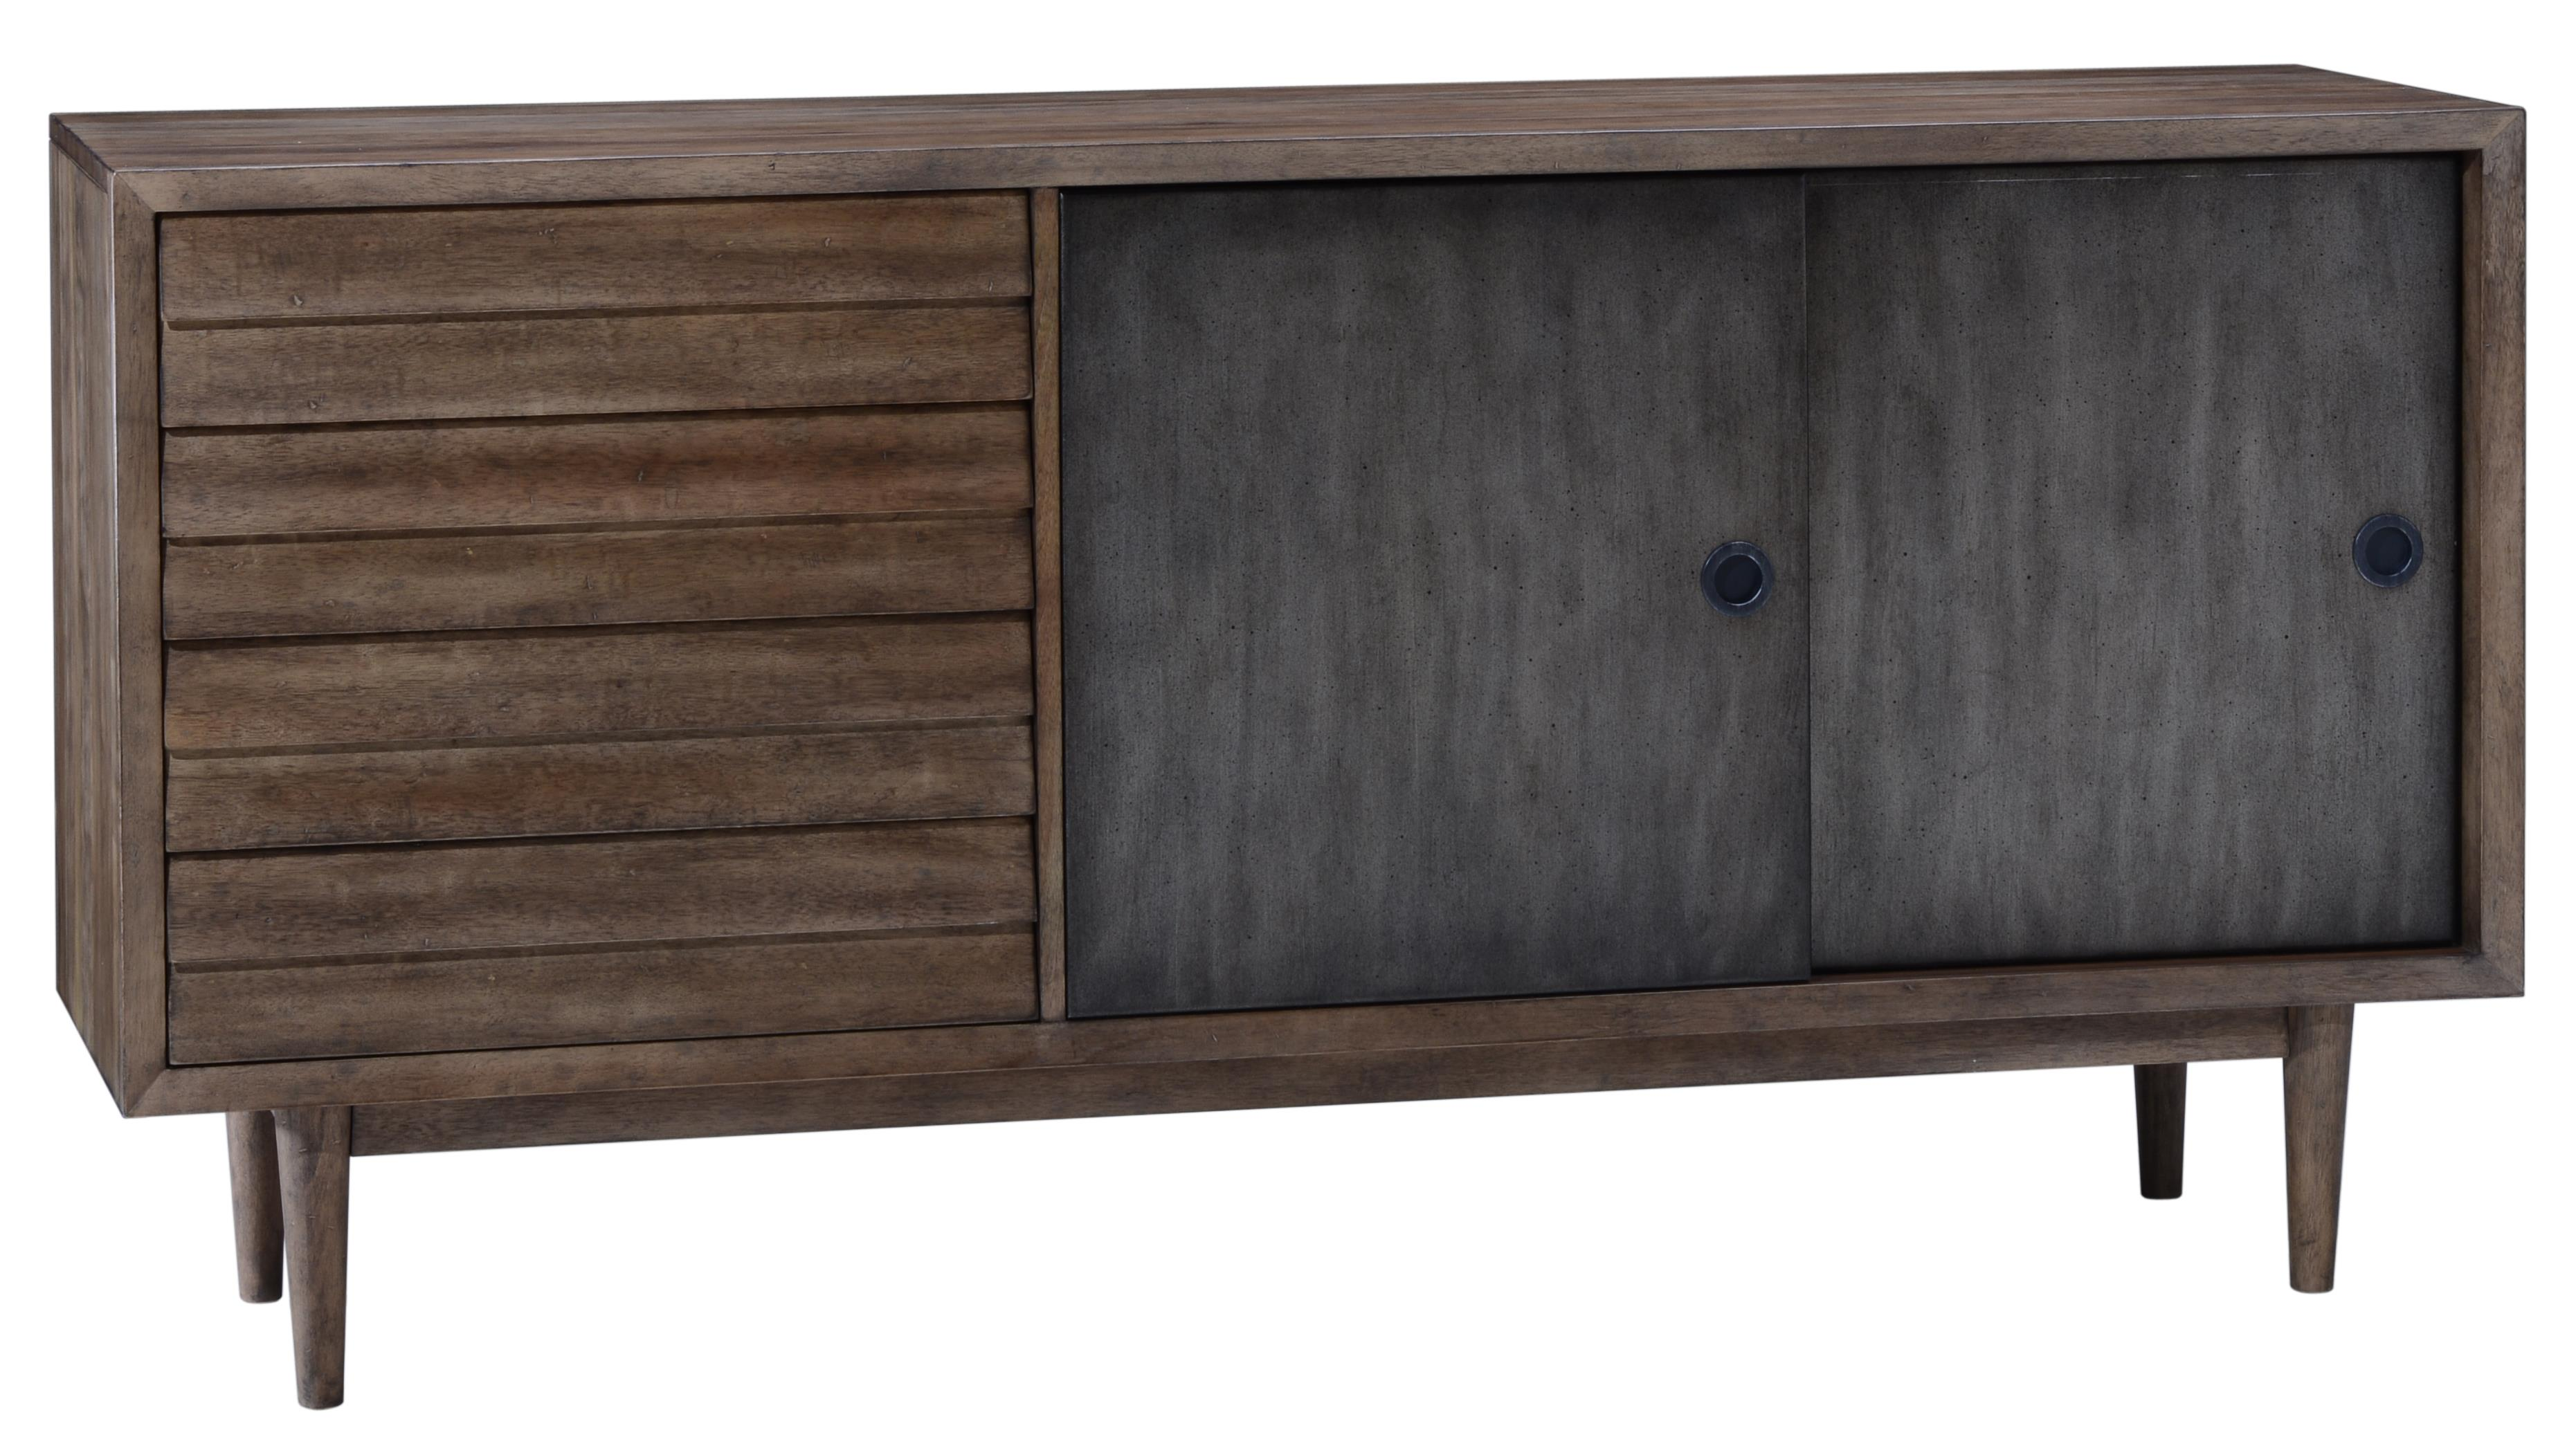 Williamsburg Sideboard With Sliding Doors By Art Furniture Inc